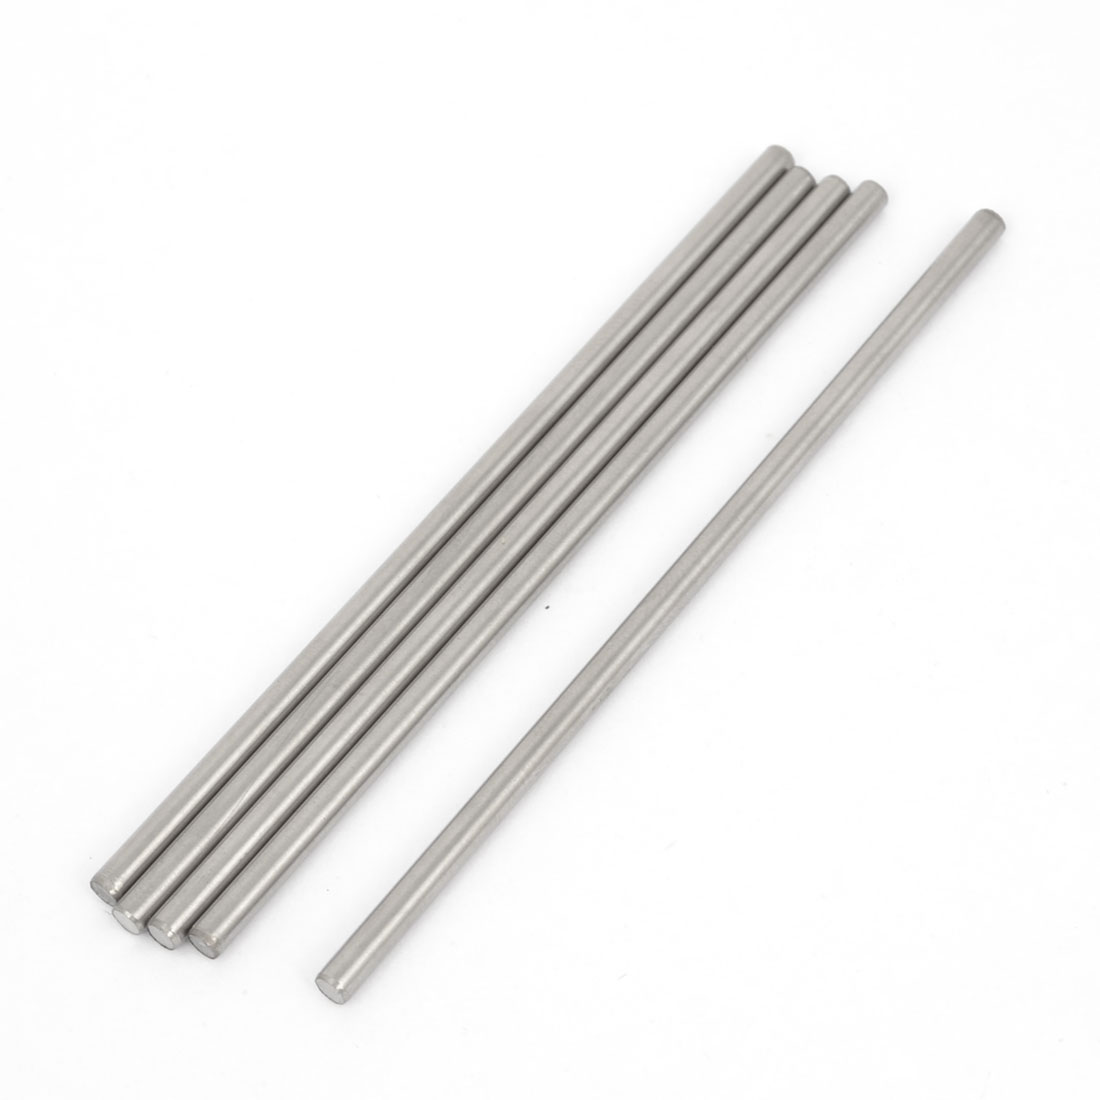 5pcs RC Car Toy Stainless Steel Straight Round Rods Shafts Replacement 3mmx90mm